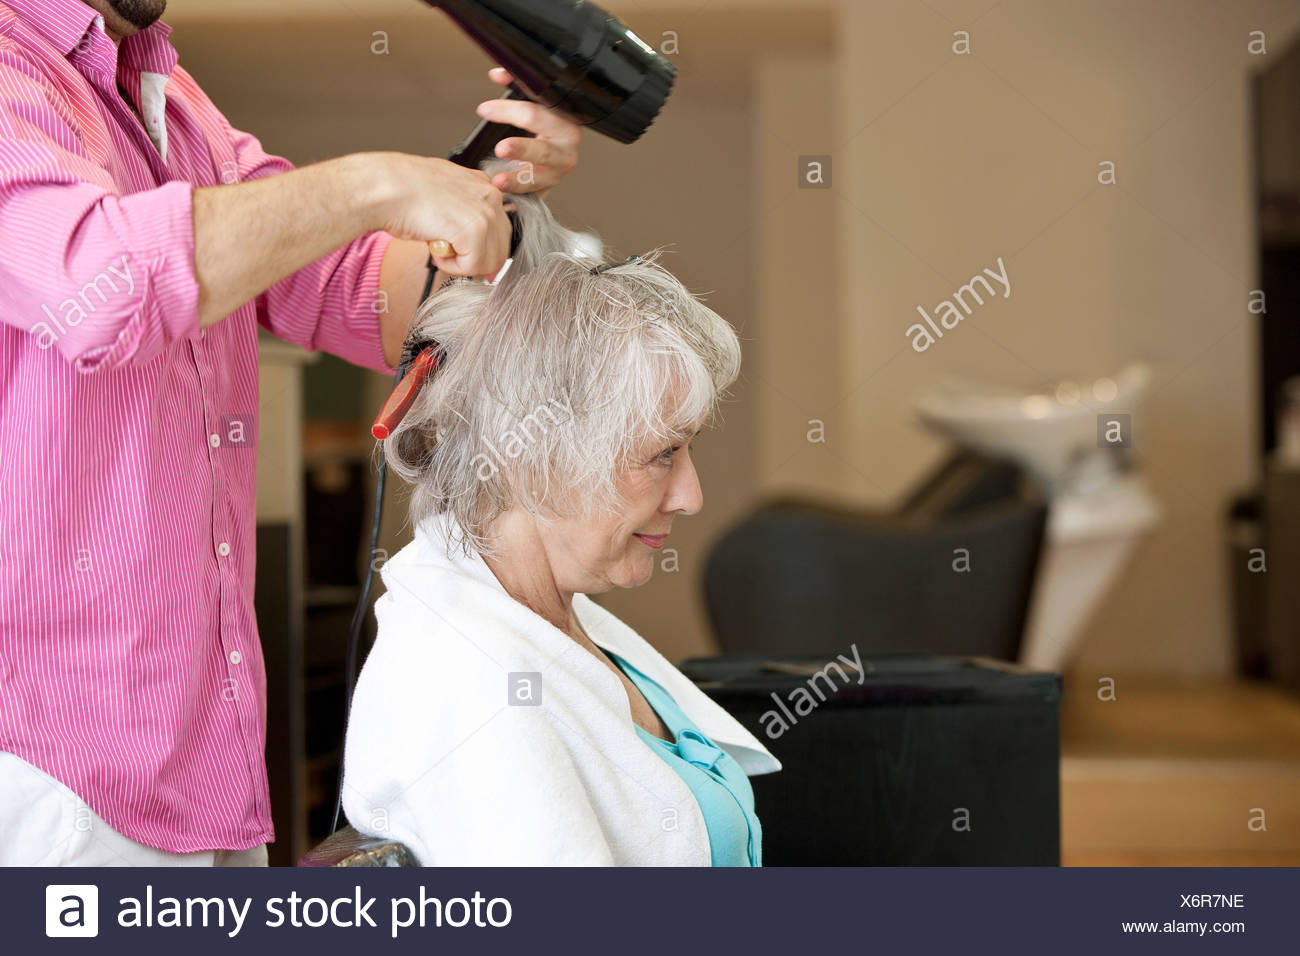 A senior woman having her blow dried at a hairdressing salon - Stock Image